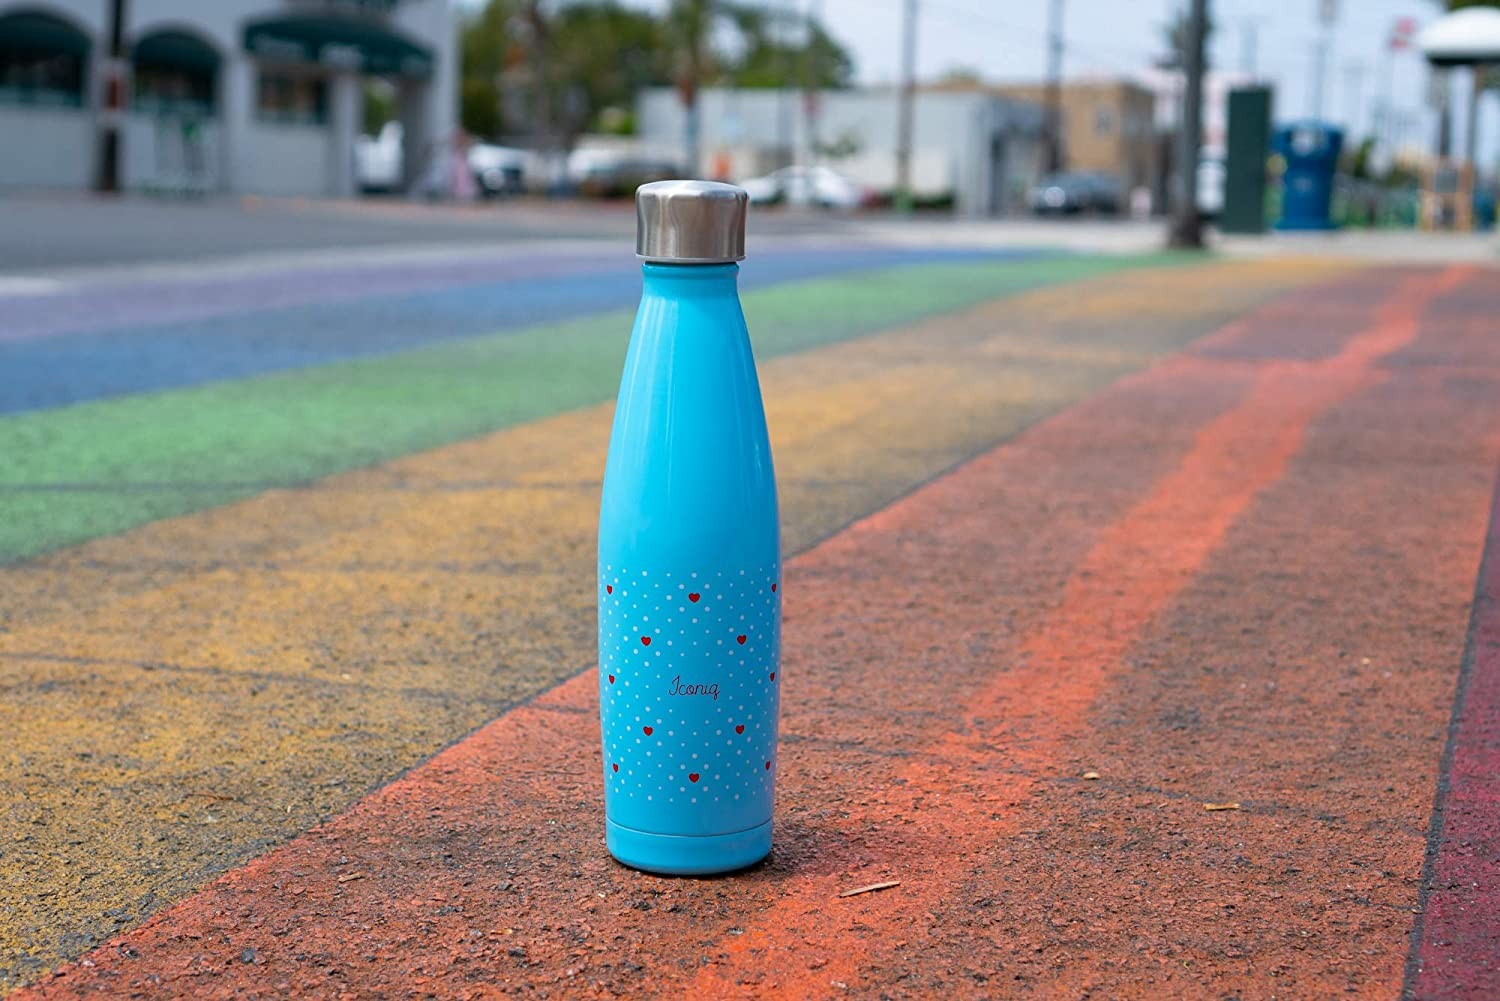 17 Ounce ICONIQ Stainless Steel Insulated Sport Bottle with Pop Up Straw Cap